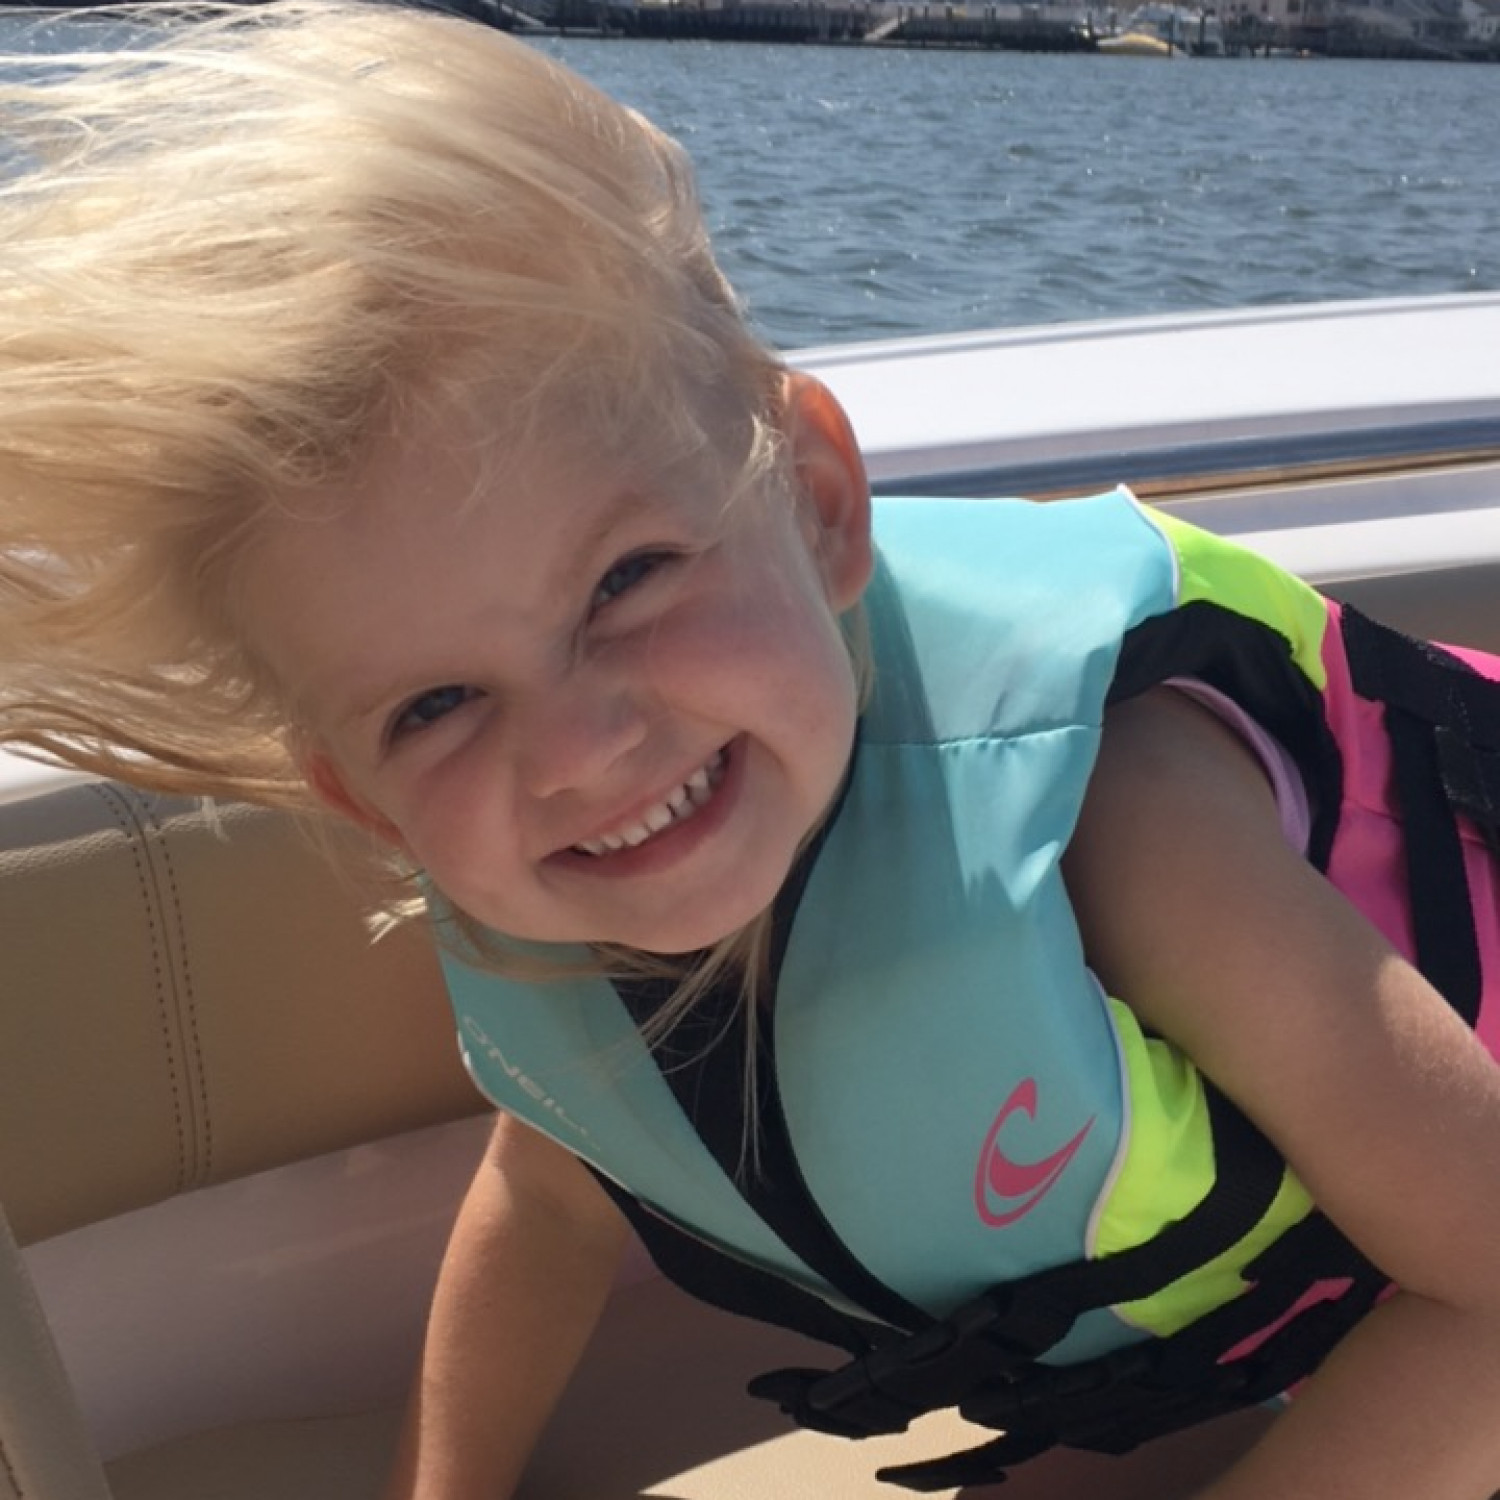 Title: Boat hair. Don't care! - On board their Sportsman Open 212 Center Console - Location: Sea isle city, New Jersey. Participating in the Photo Contest #SportsmanNovember2017